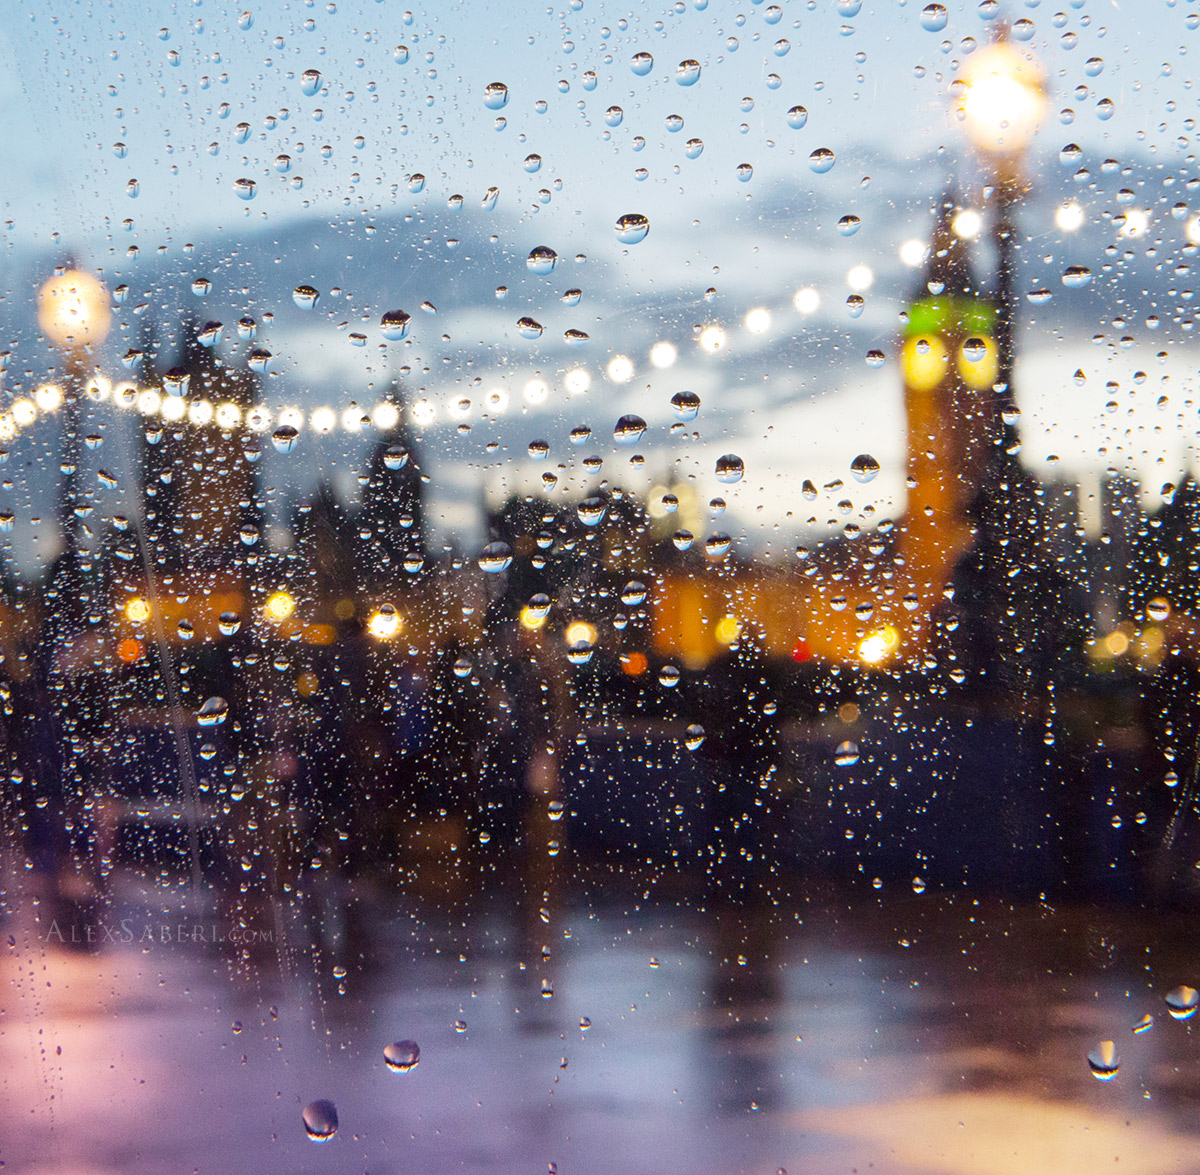 Southbank in the rain